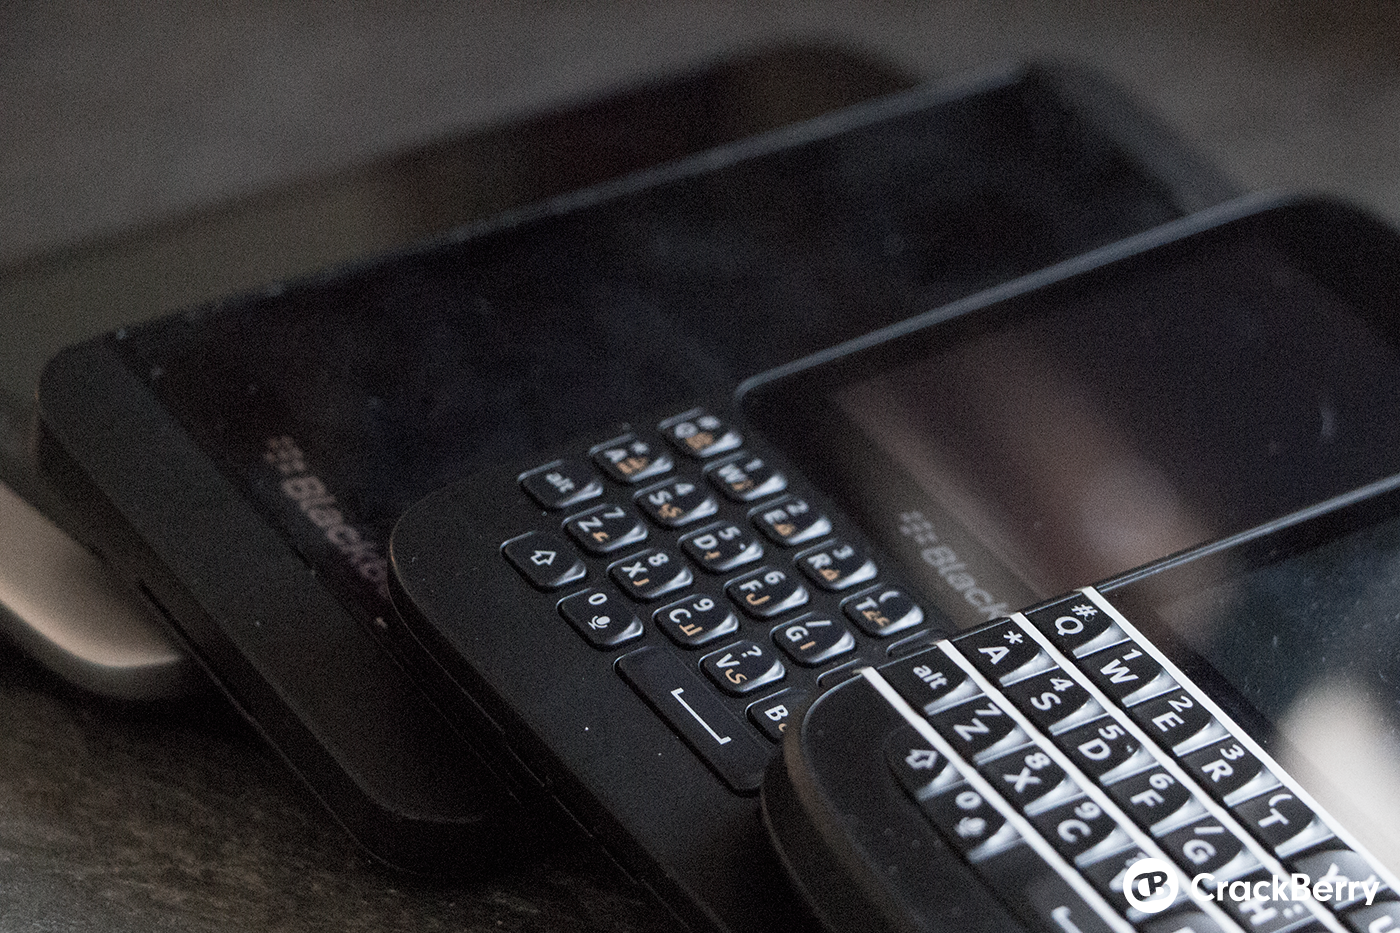 The best BlackBerry you can buy right now